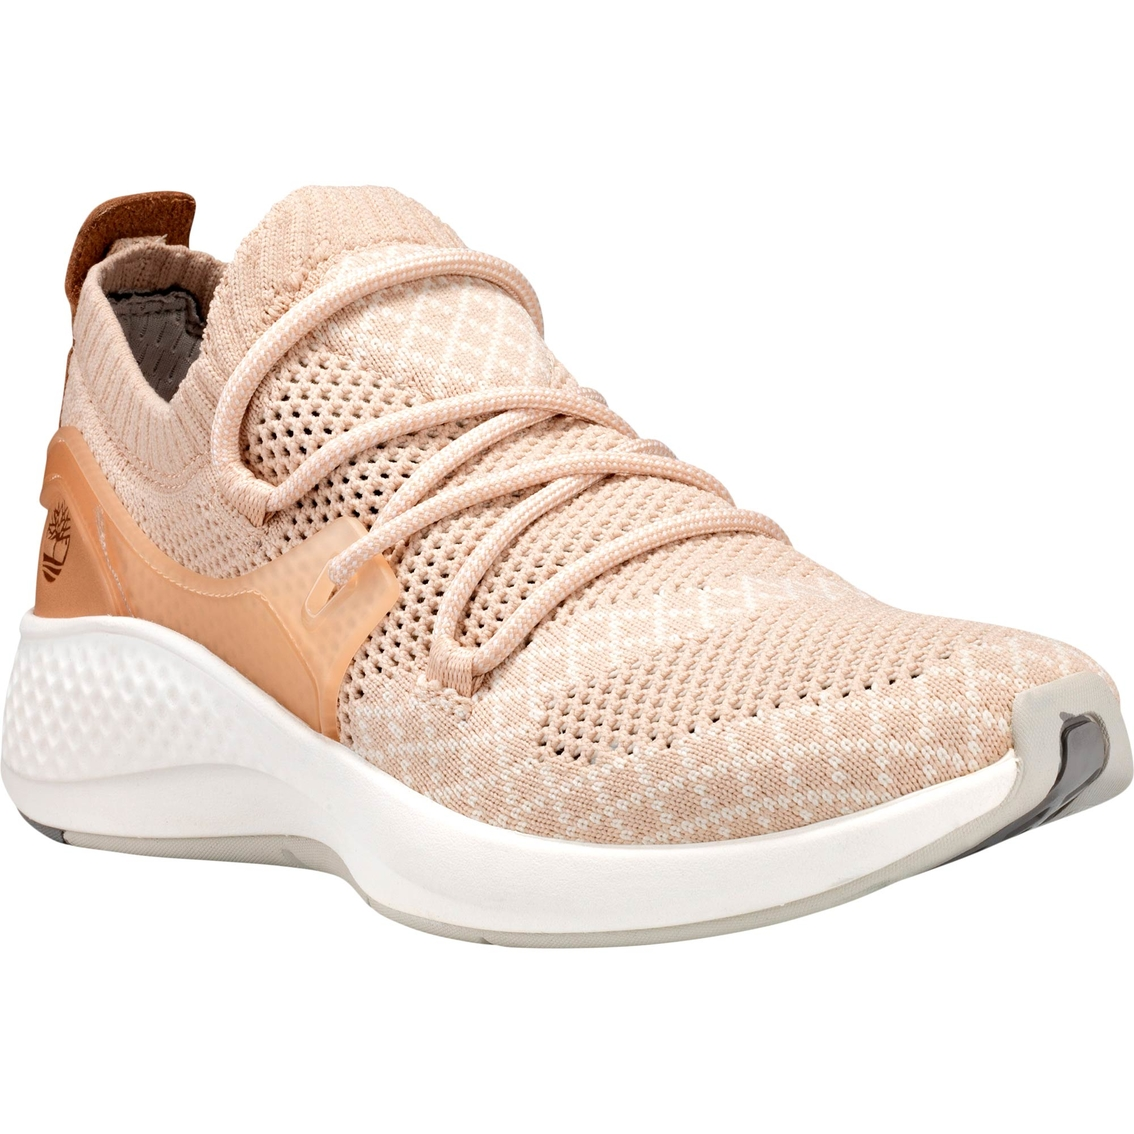 Timberland Fly Roam Go Knit Chukka Sneakers | Casuals